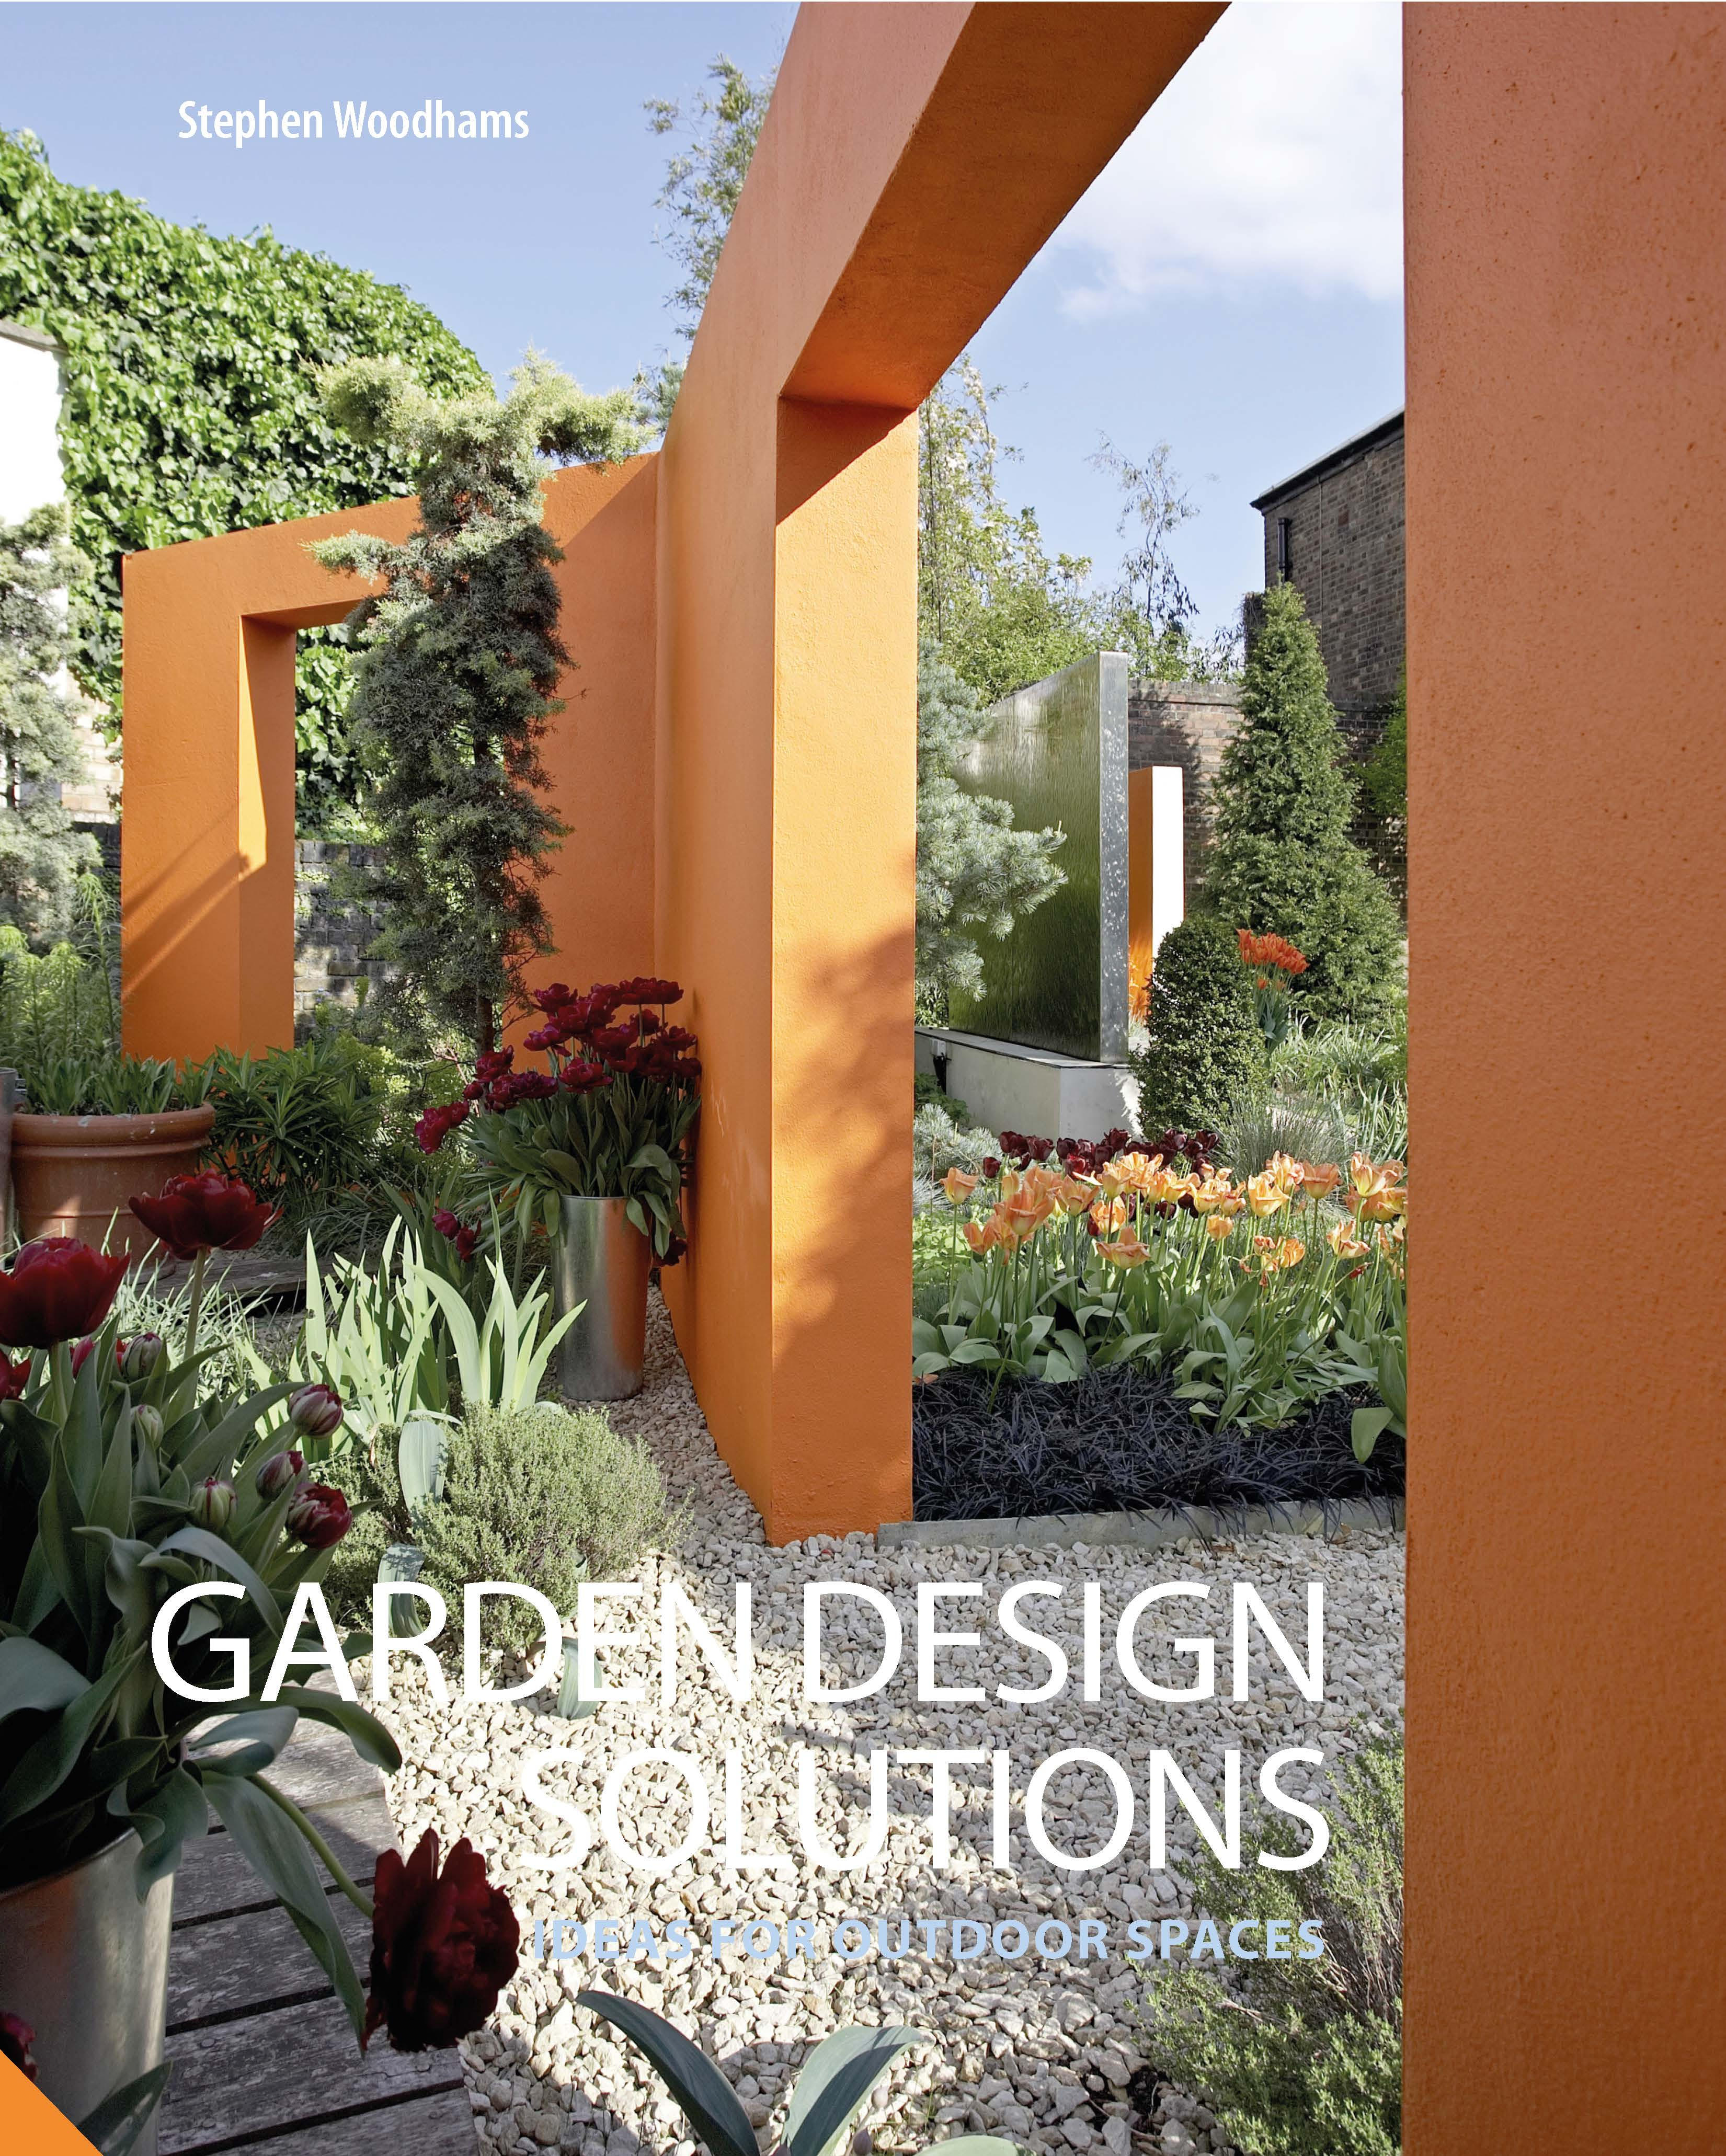 win a copy of garden design solutions ideas for outdoor